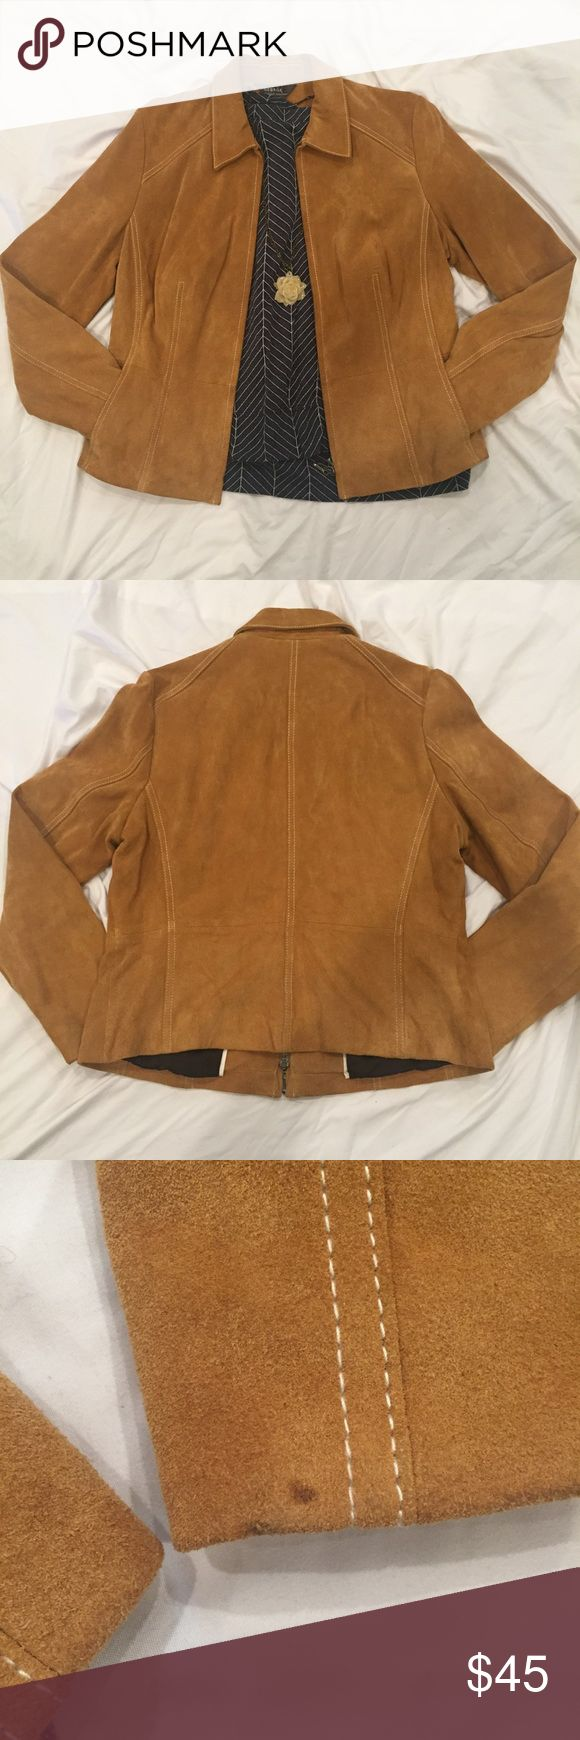 """Genuine suede jacket size ladies Large 12/14 Genuine suede jacket. Size Large 12/14 Approx 23"""" in length flat. Excellent quality in good condition. One spot on inside of sleeve by wrist and a few light scuff marks by pocket where arms hang. (See pictures) George Jackets & Coats Utility Jackets"""